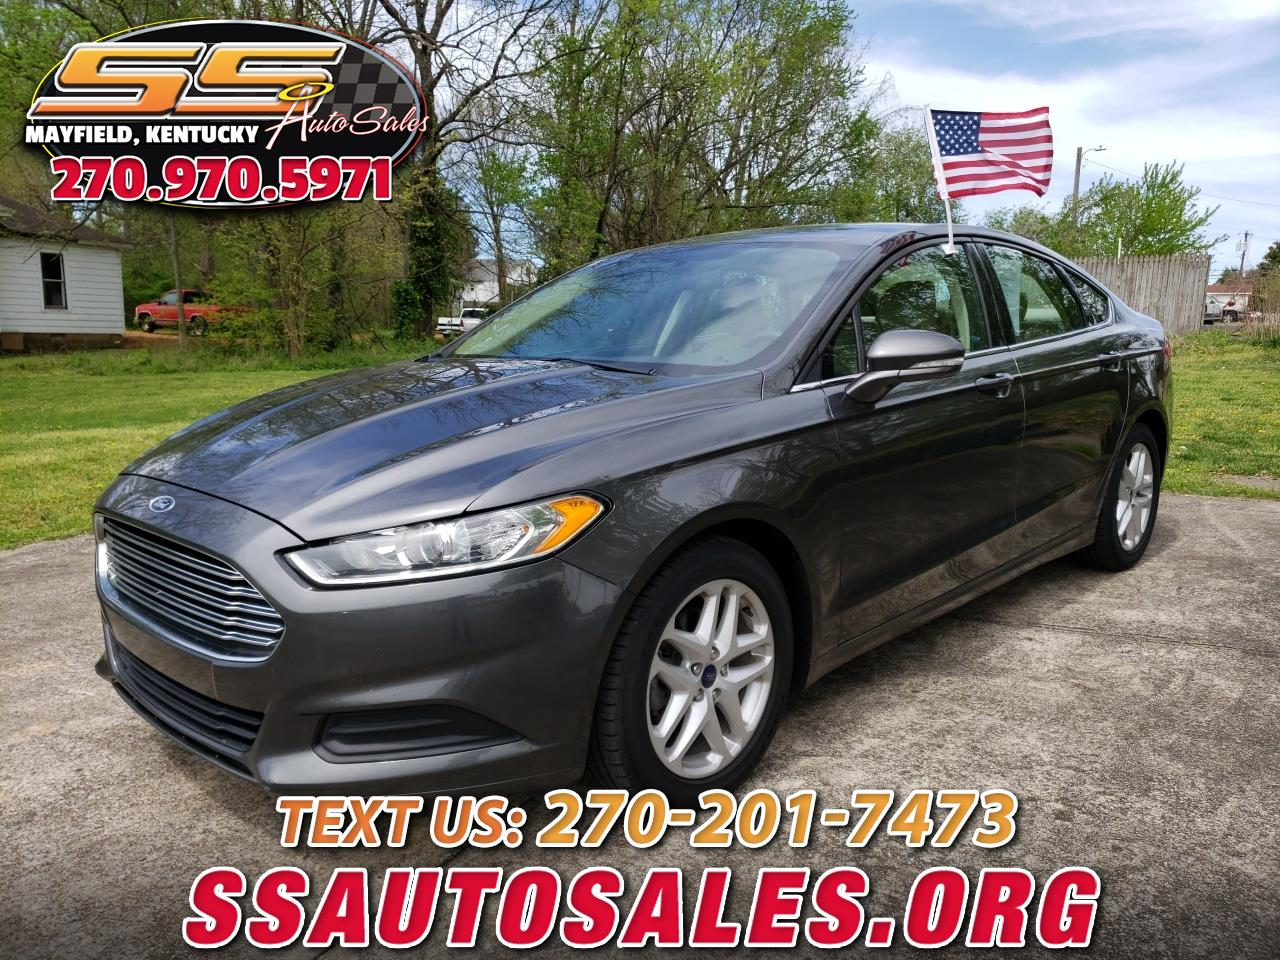 2015 Ford Fusion 4dr Sdn I4 SE FWD